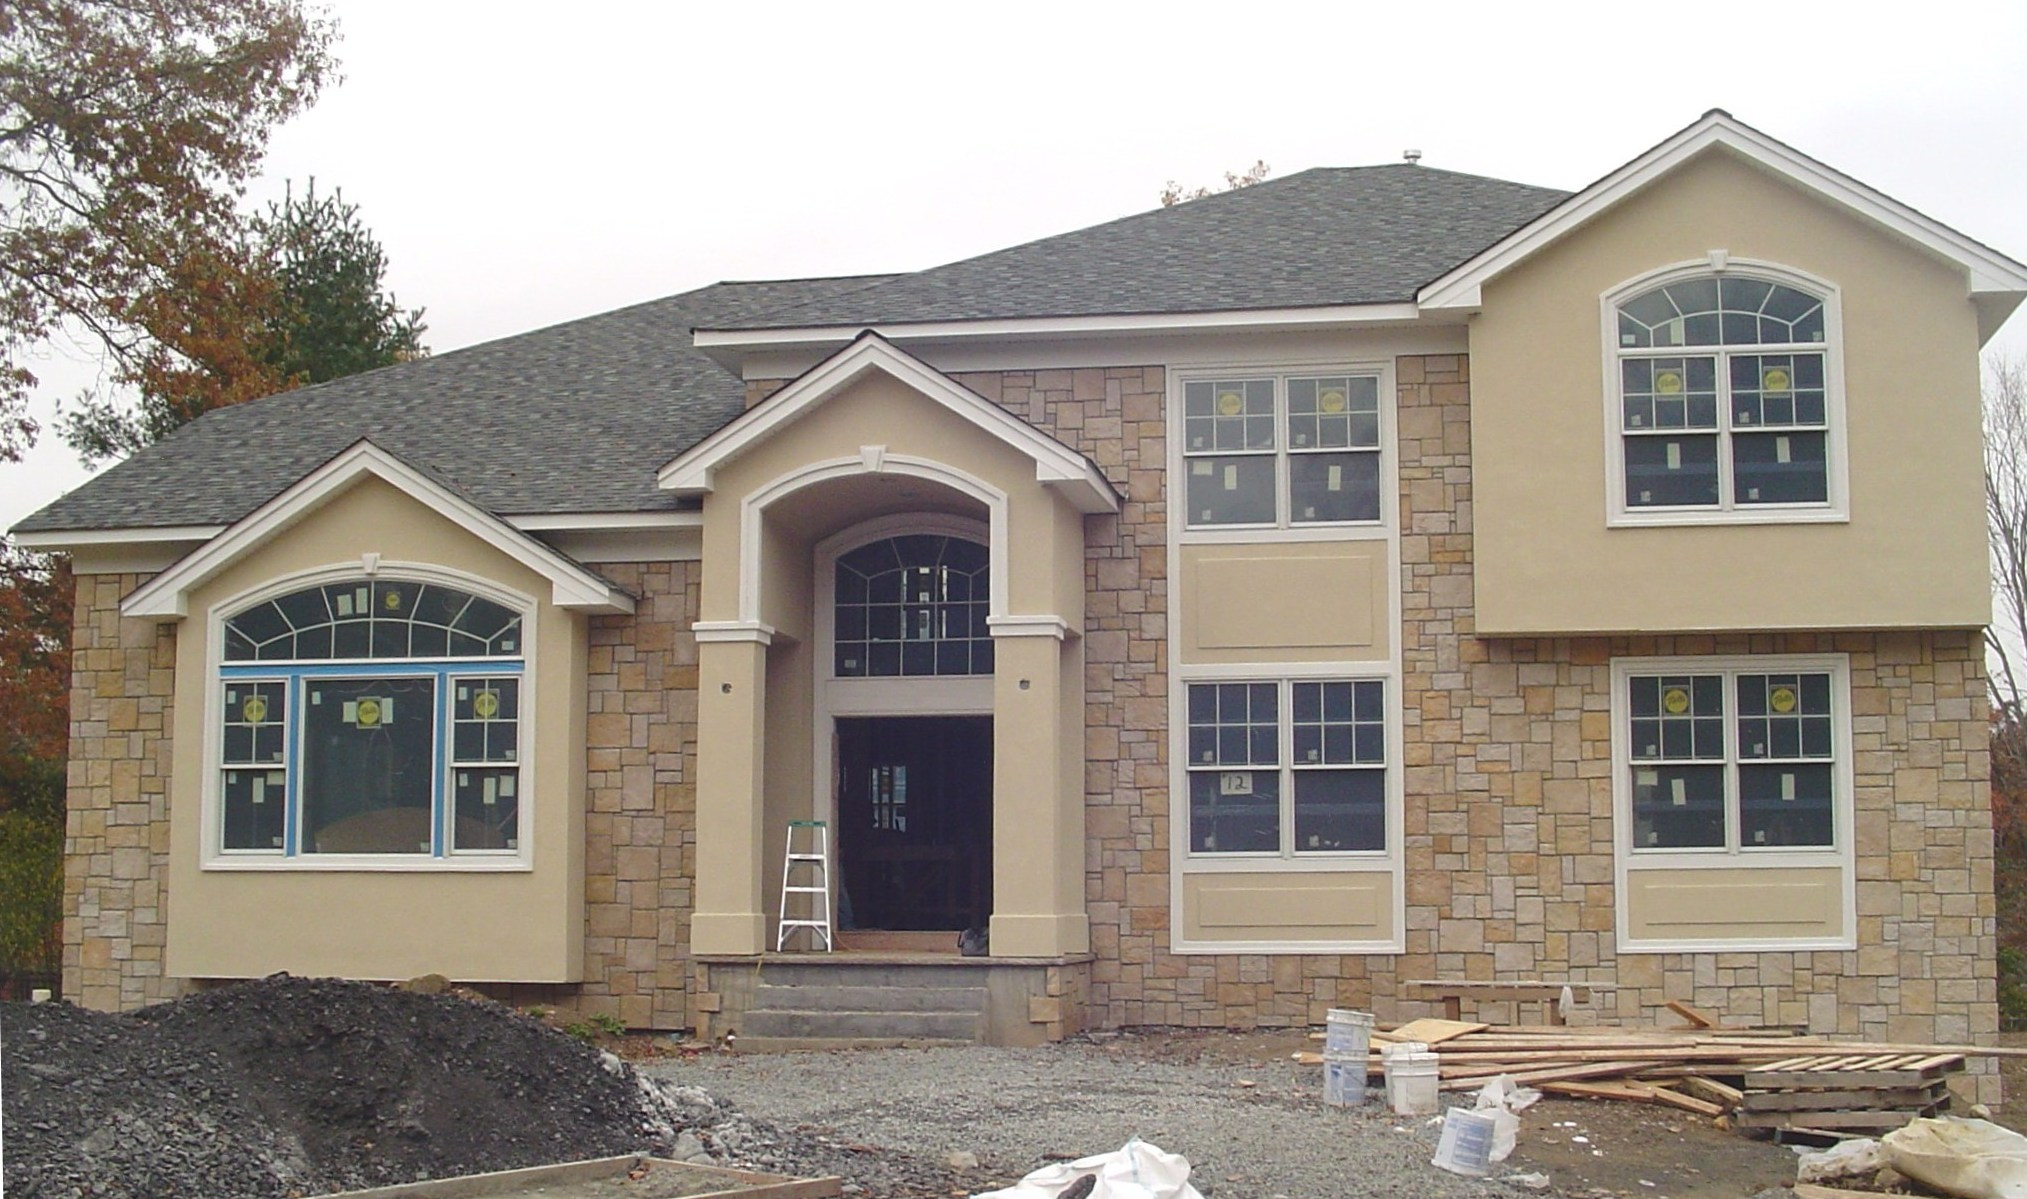 Stucco and stone front with custom trim detail